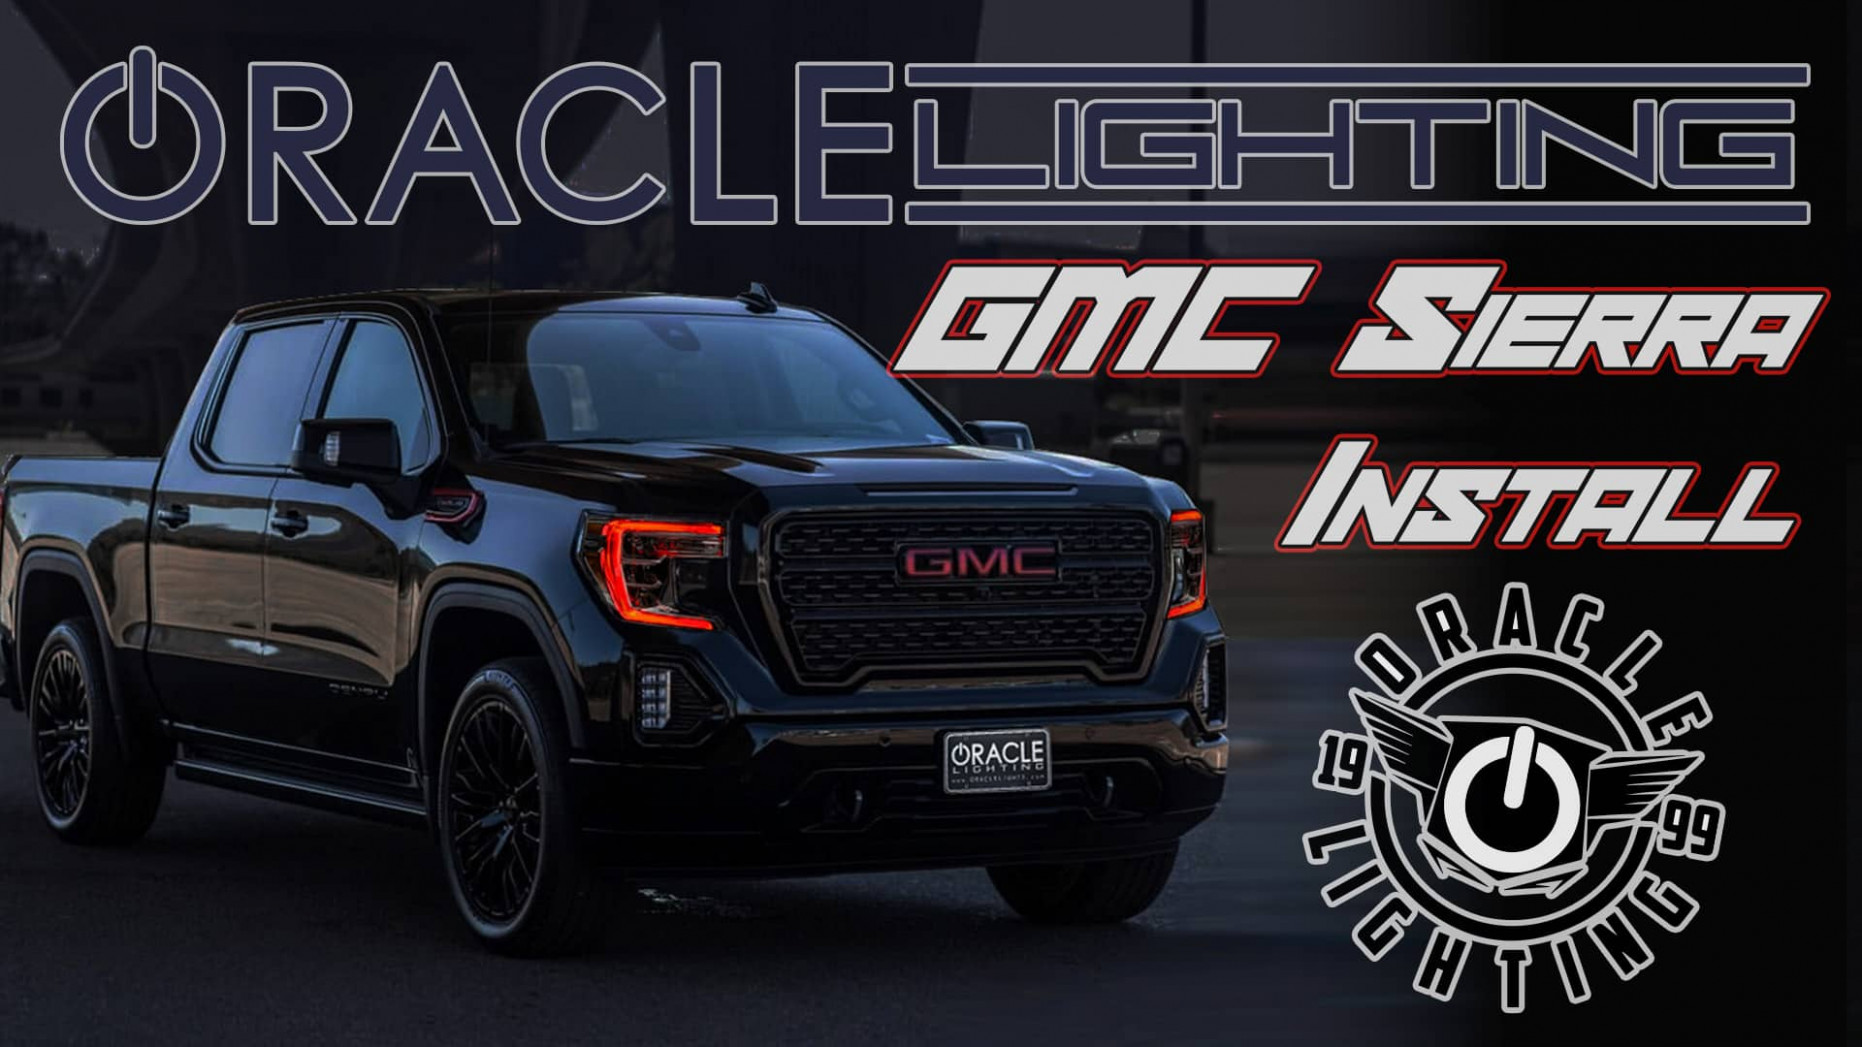 8-8 GMC Sierra ORACLE ColorSHIFT RGB+W Headlight DRL Upgrade